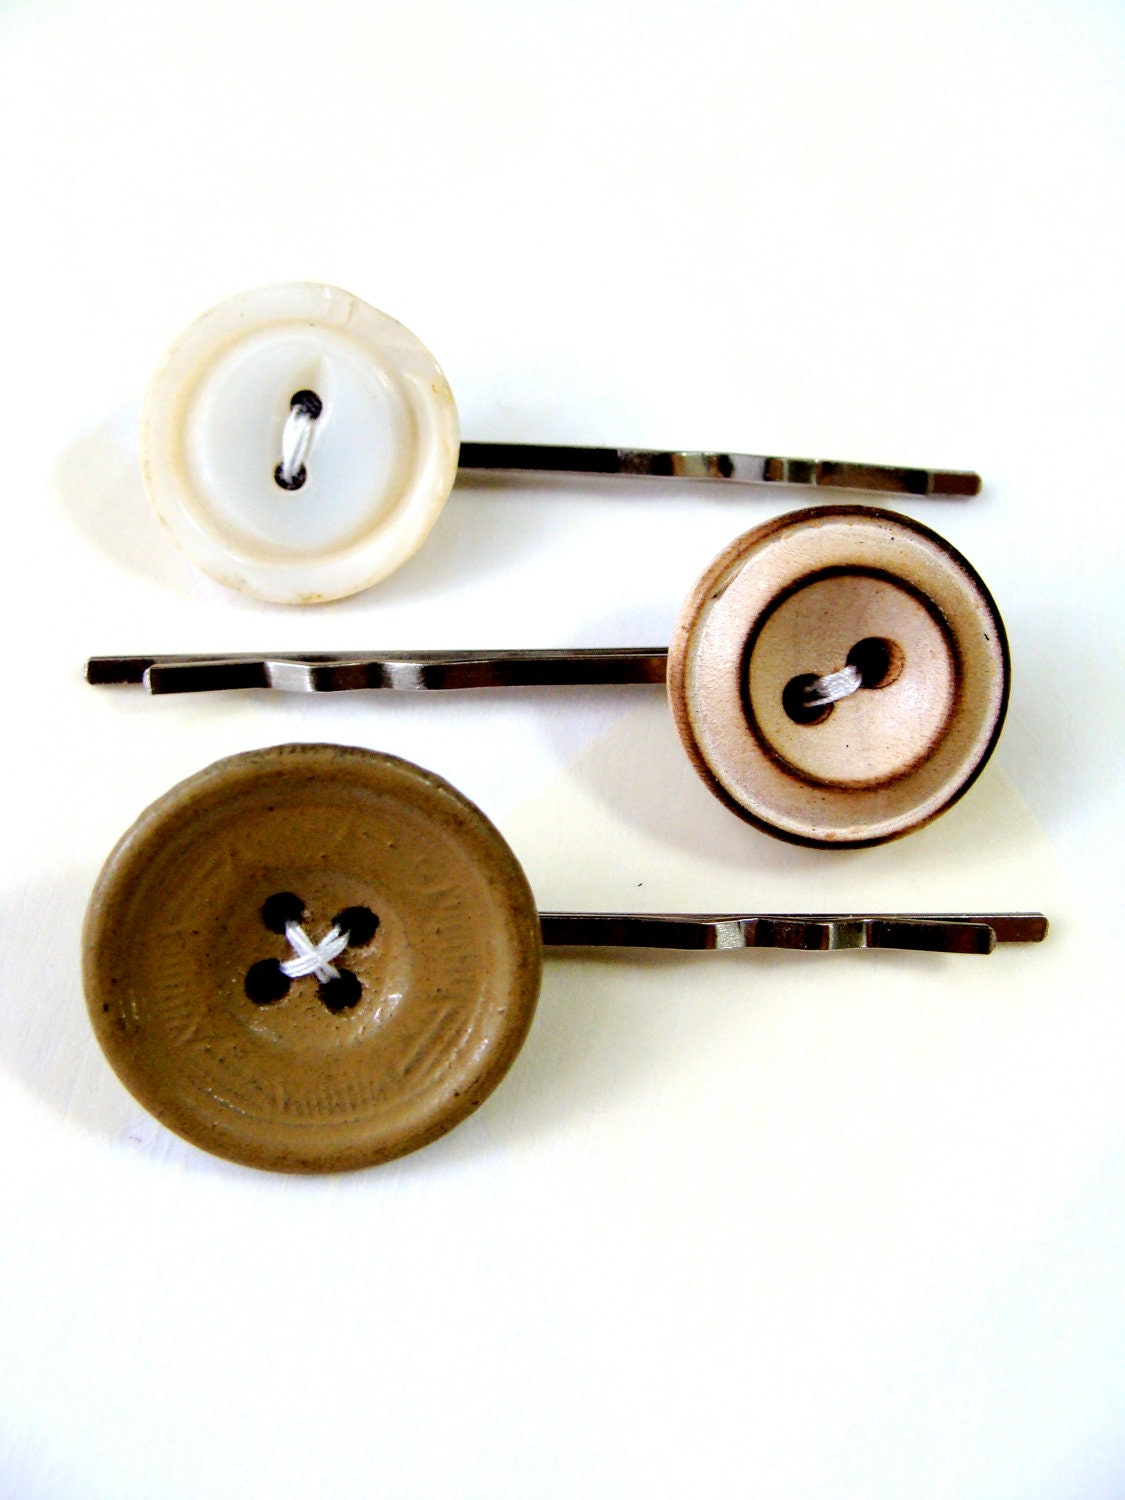 hair accessories with button accents in earthy brown, tan, and cream neutrals